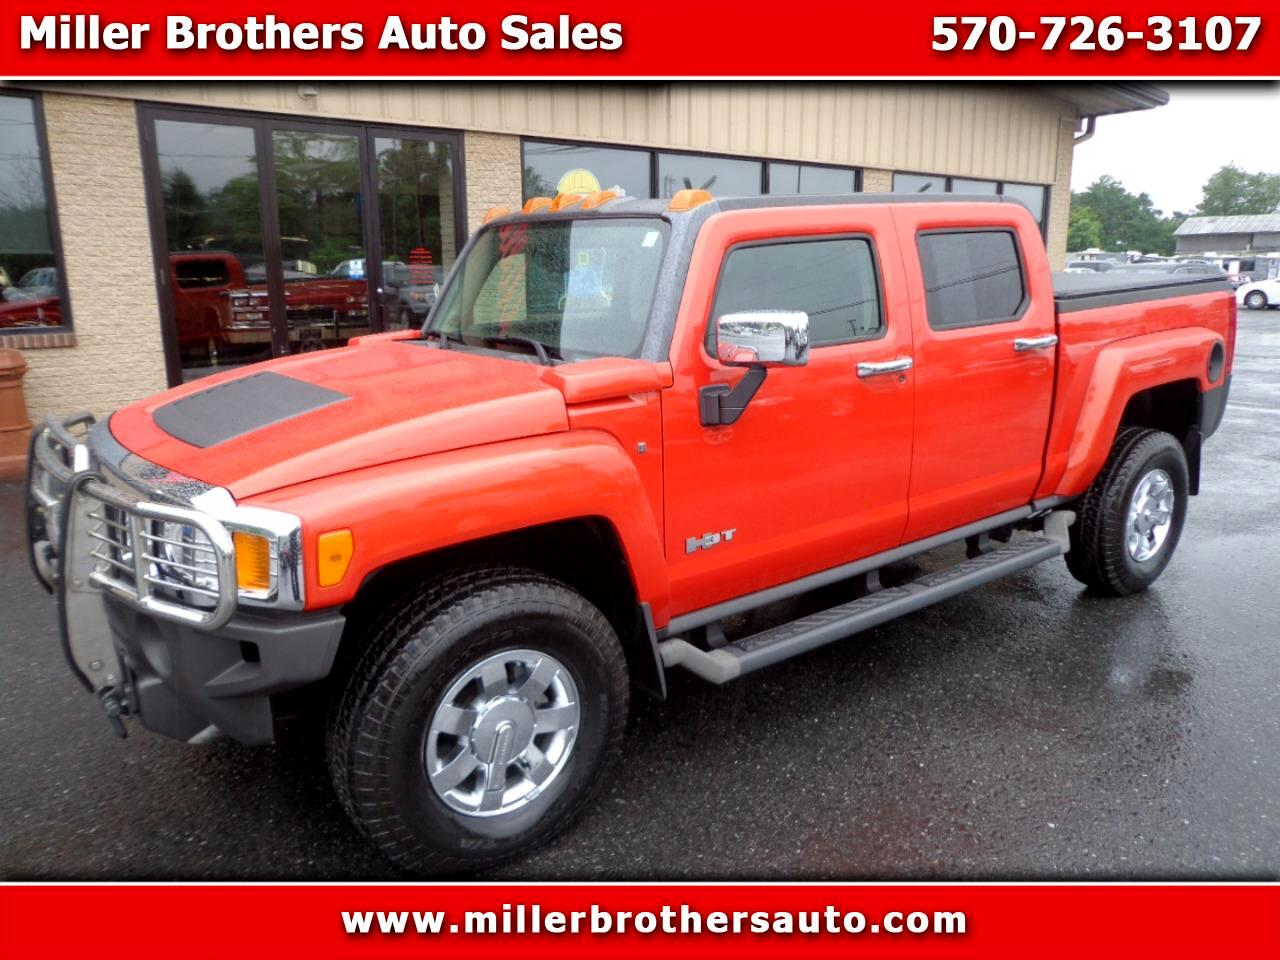 Used 14 HUMMER H14T Alpha for Sale in Mill Hall PA 14 ... | used h3t hummer for sale